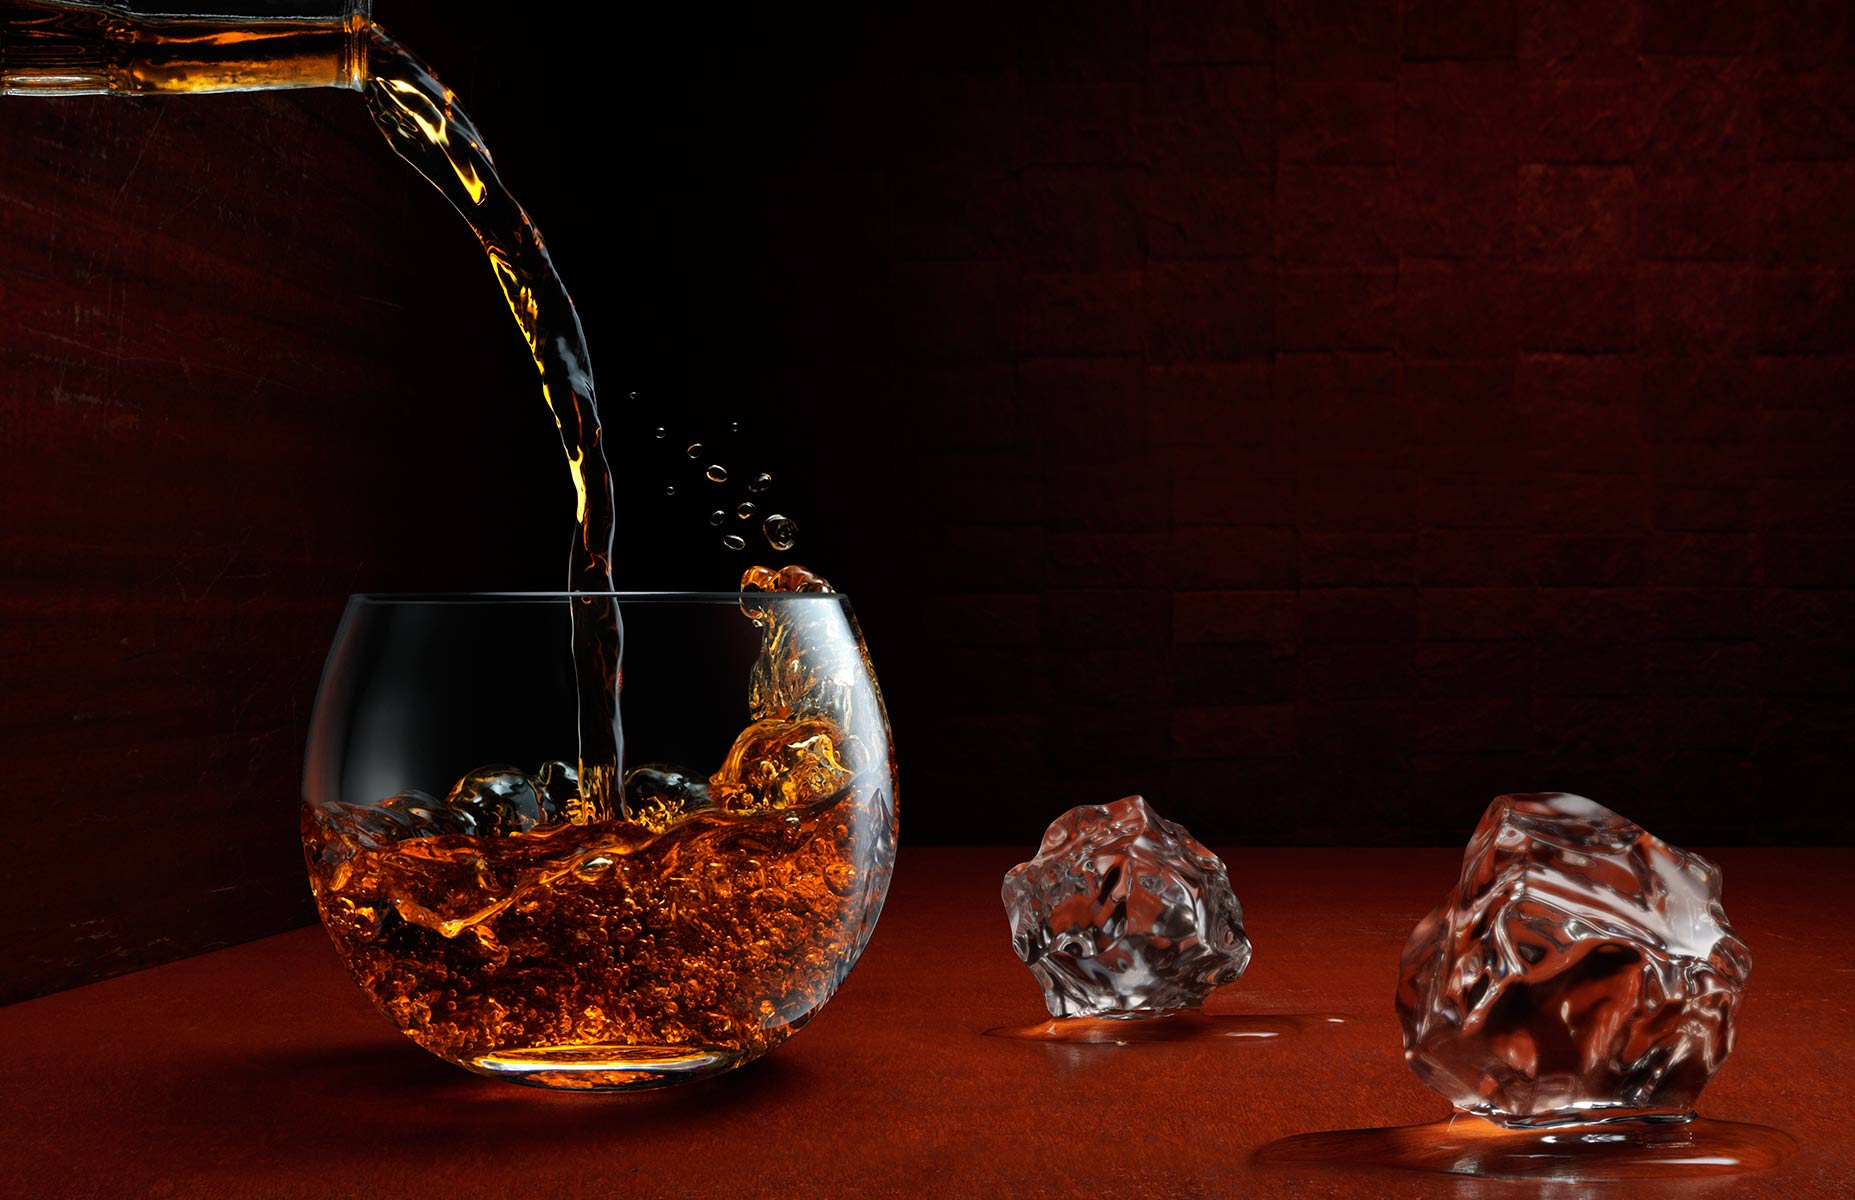 Whiskey pouring from a bottle into a round lowball glass on a mahogany wood surface which fades to black with liquid splashing about. This example of high speed photography exhibits incredible detail while two ice cubes melt on the surface. This picture is in landscape orientation with a low angle of view and strong light source from the right.